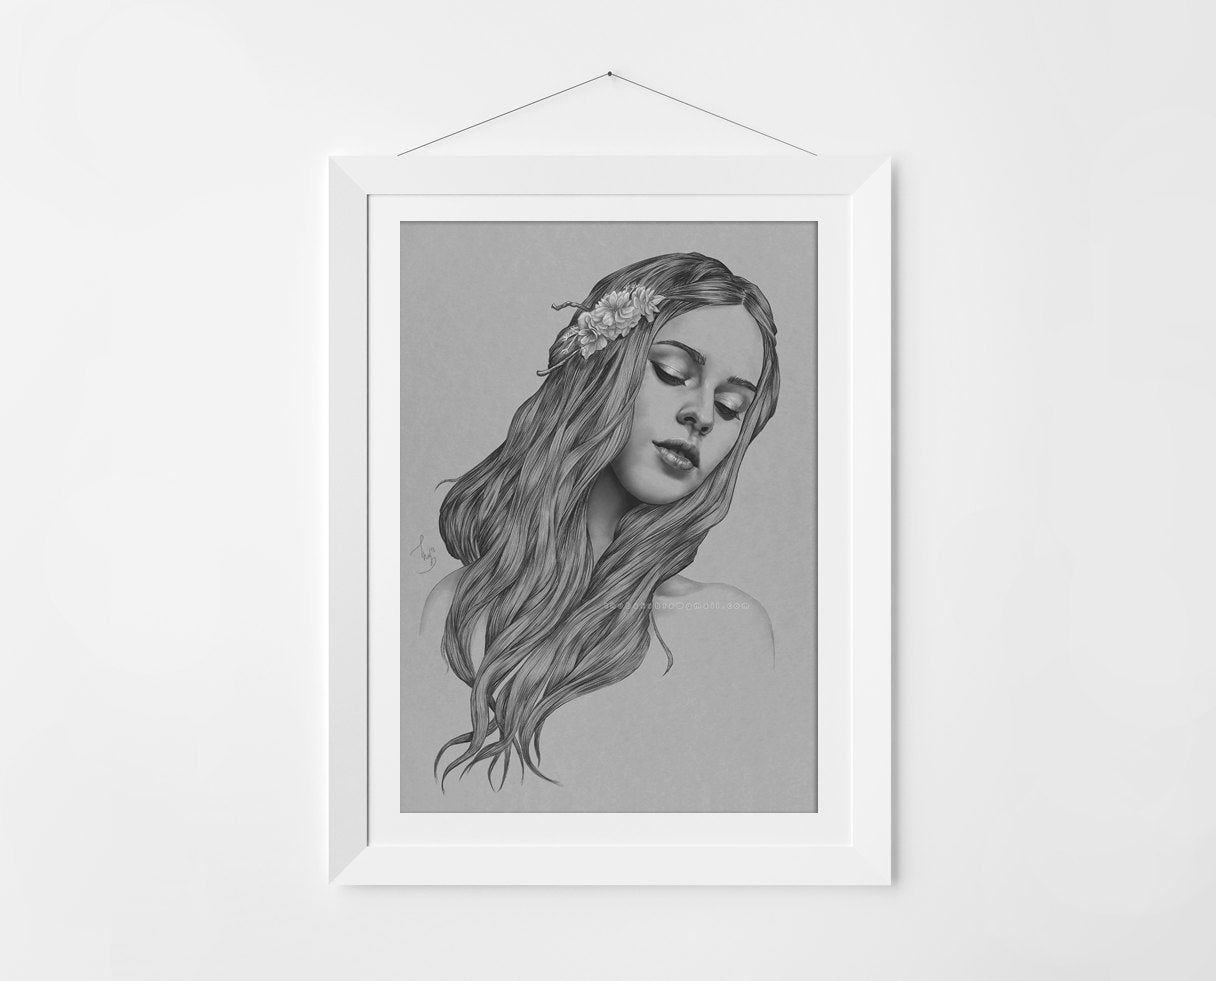 Art Print by Thubakabra Surreal Portrait of a Girl, Black and White | Brandless Artist